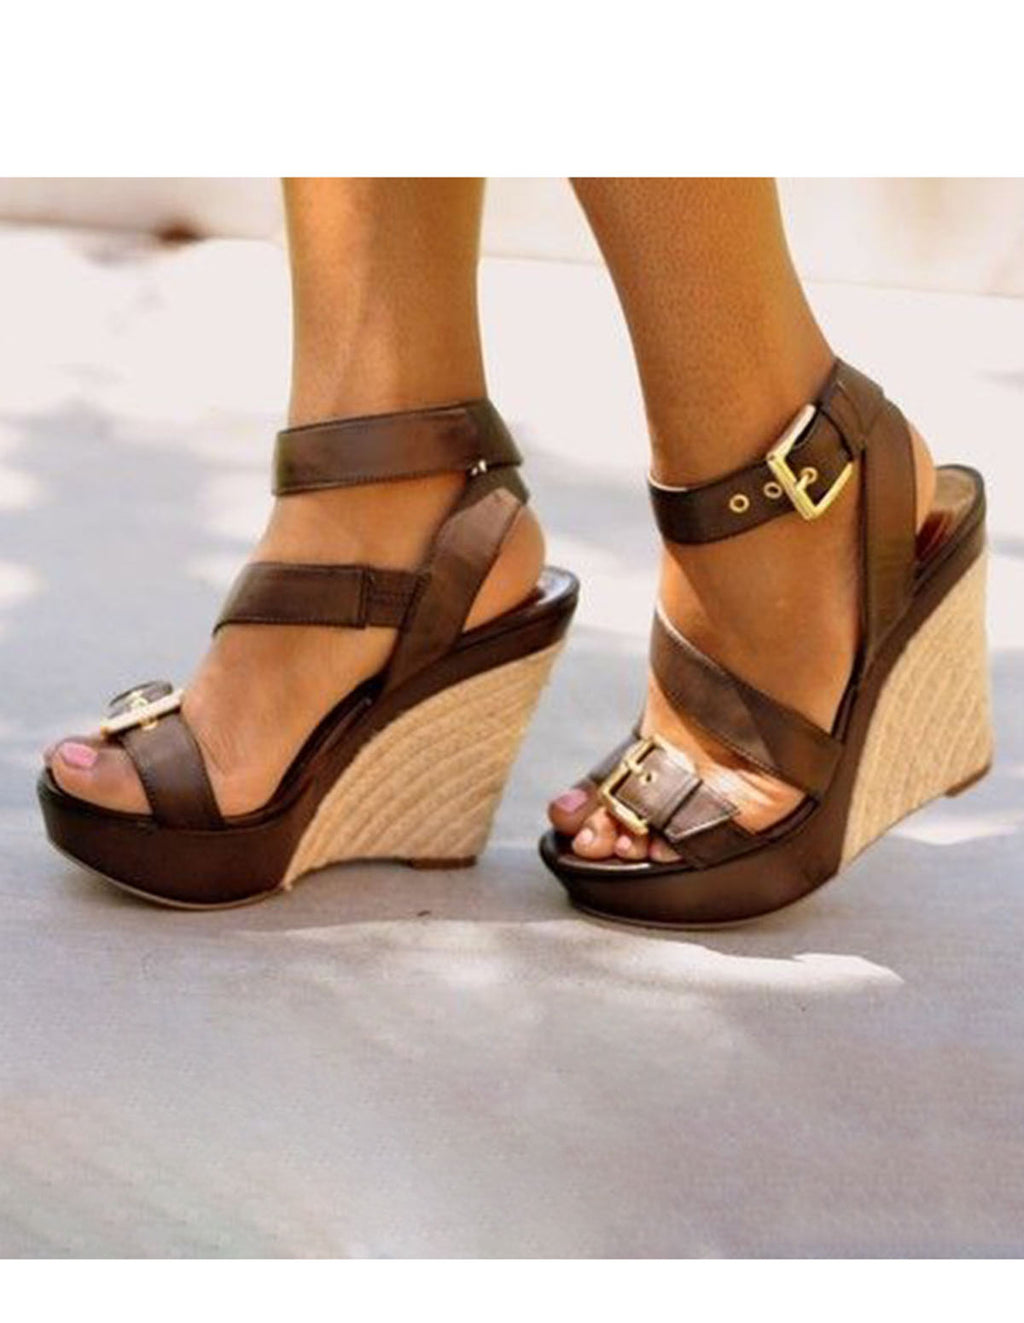 Ankle Straps Wedge Sandals